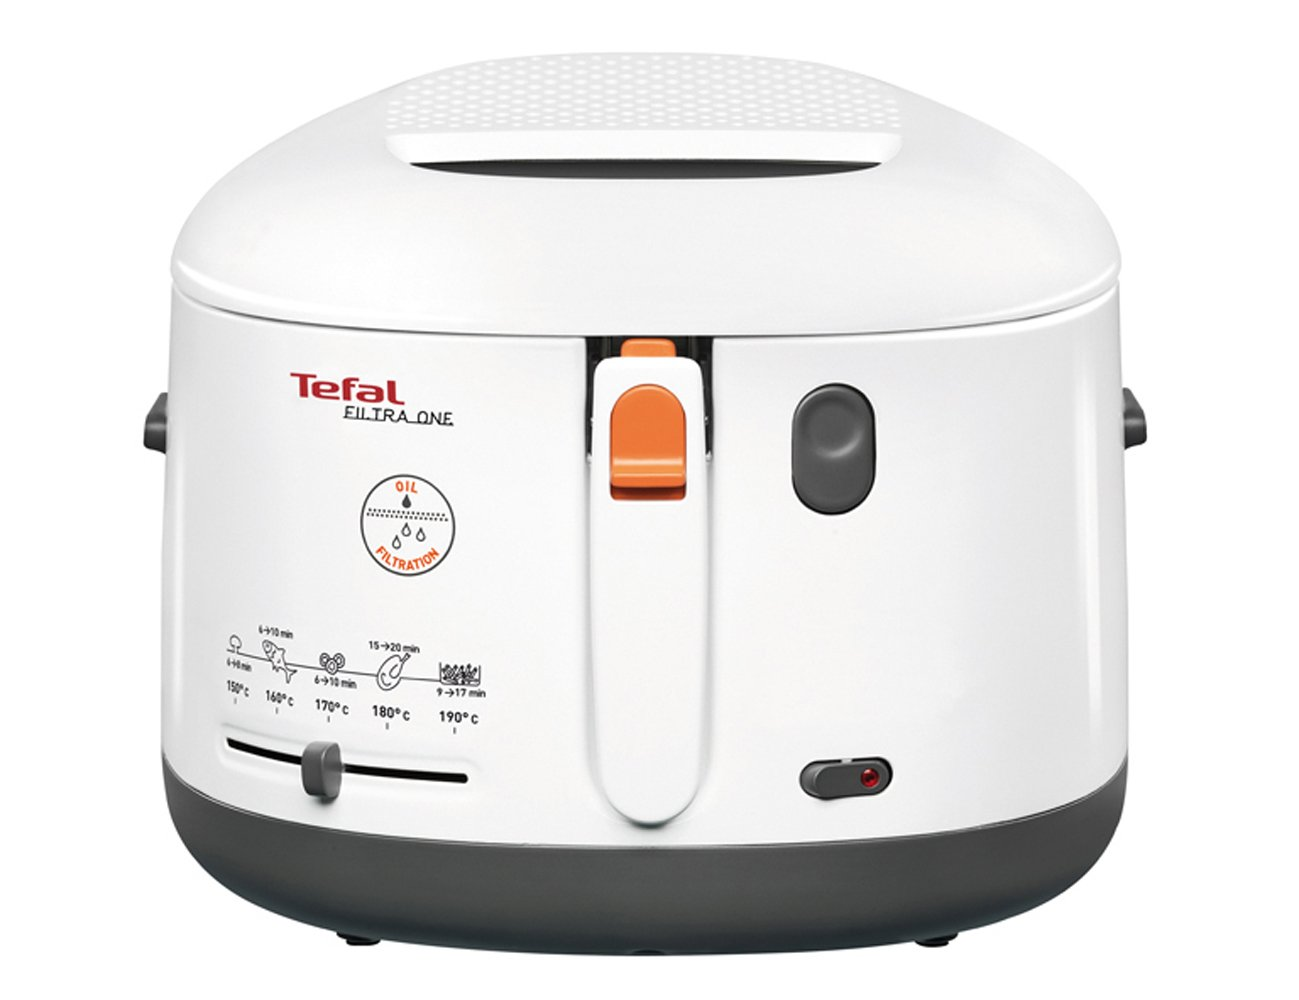 Tefal Fritteuse amazon